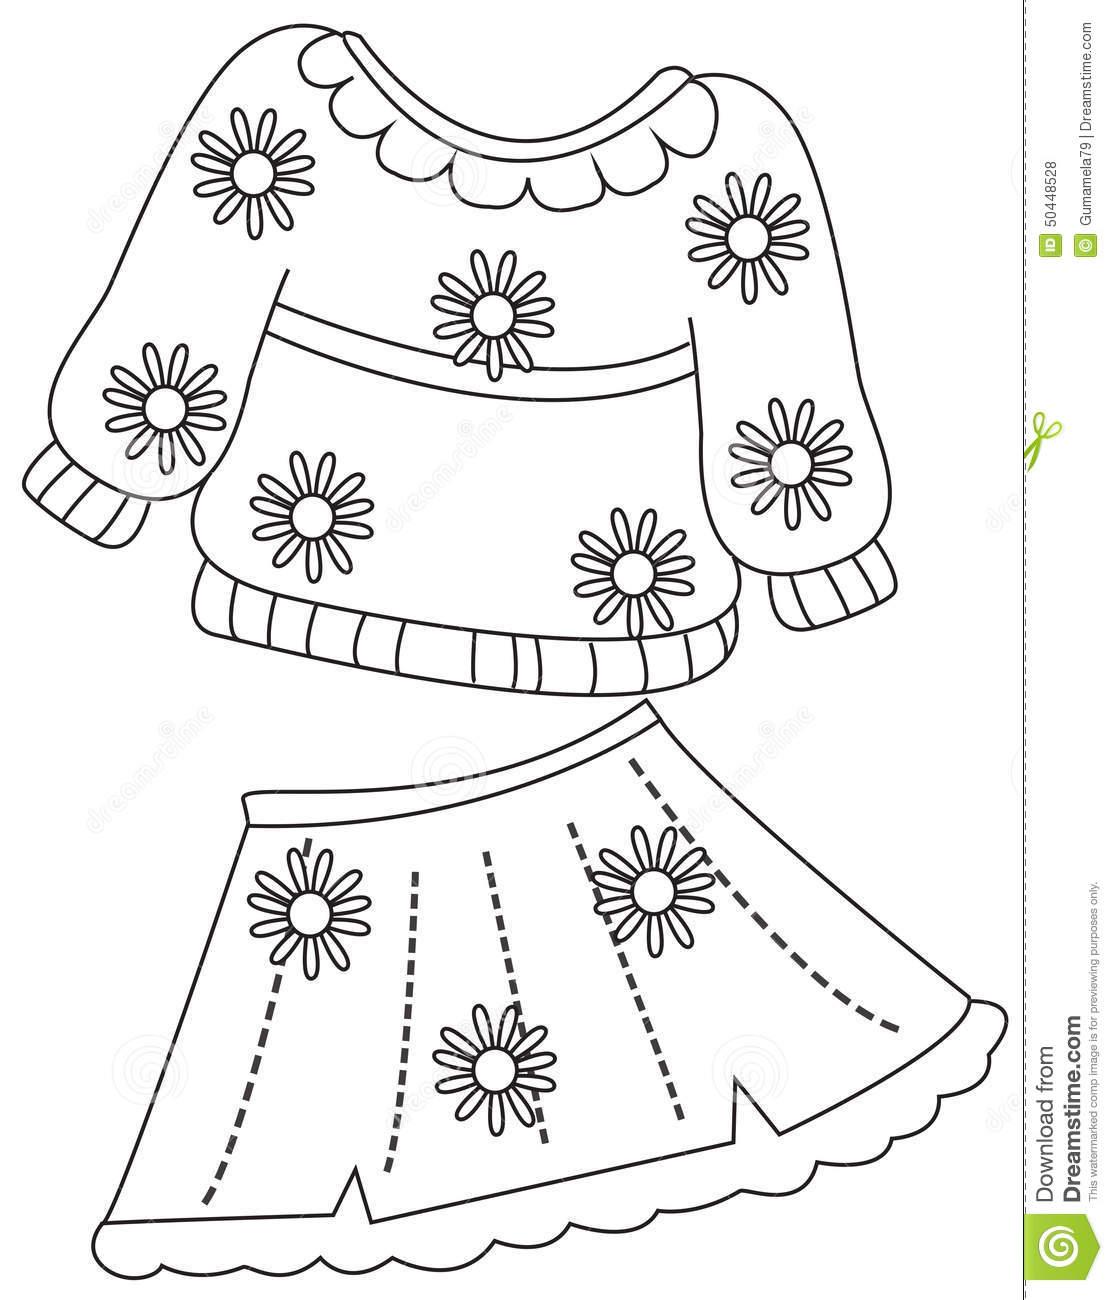 Print Clothes Coloring Page Stock Illustration